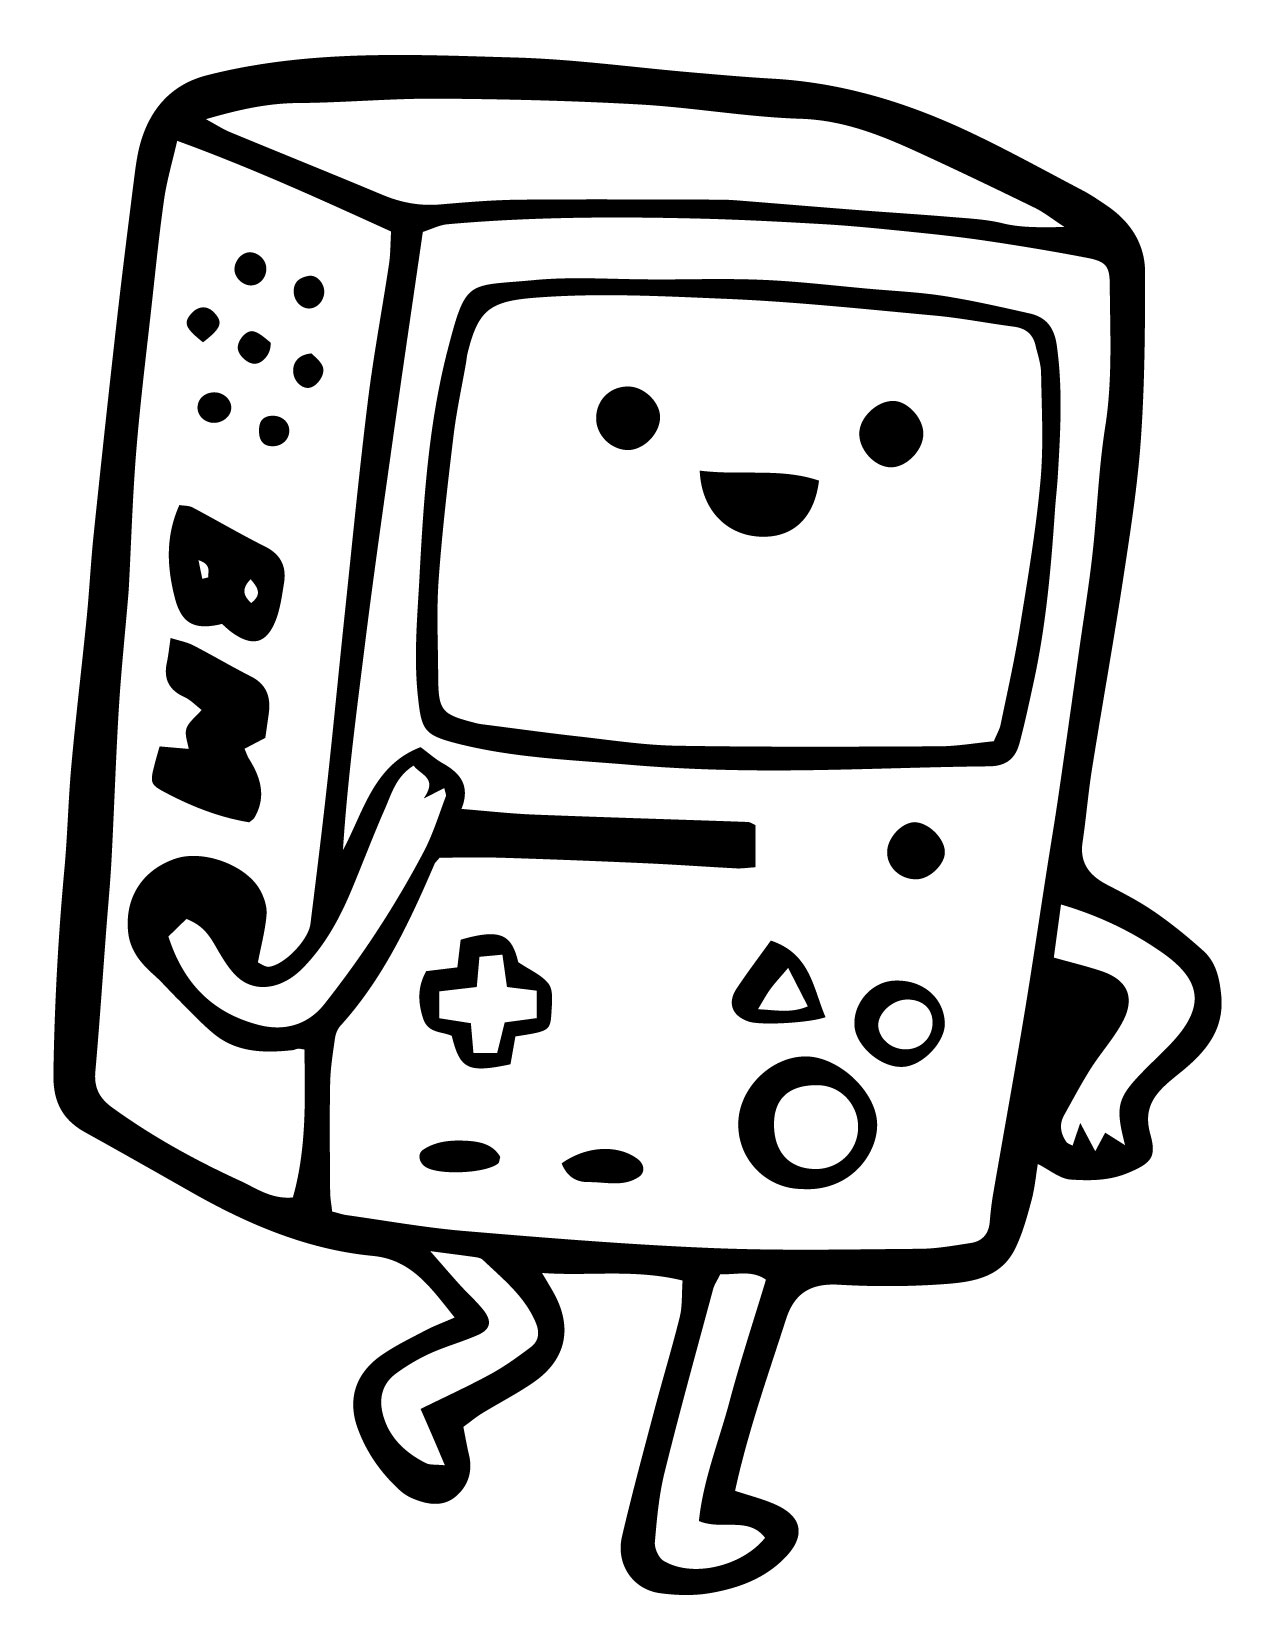 Adventure Time Television Cartoon Coloring Page